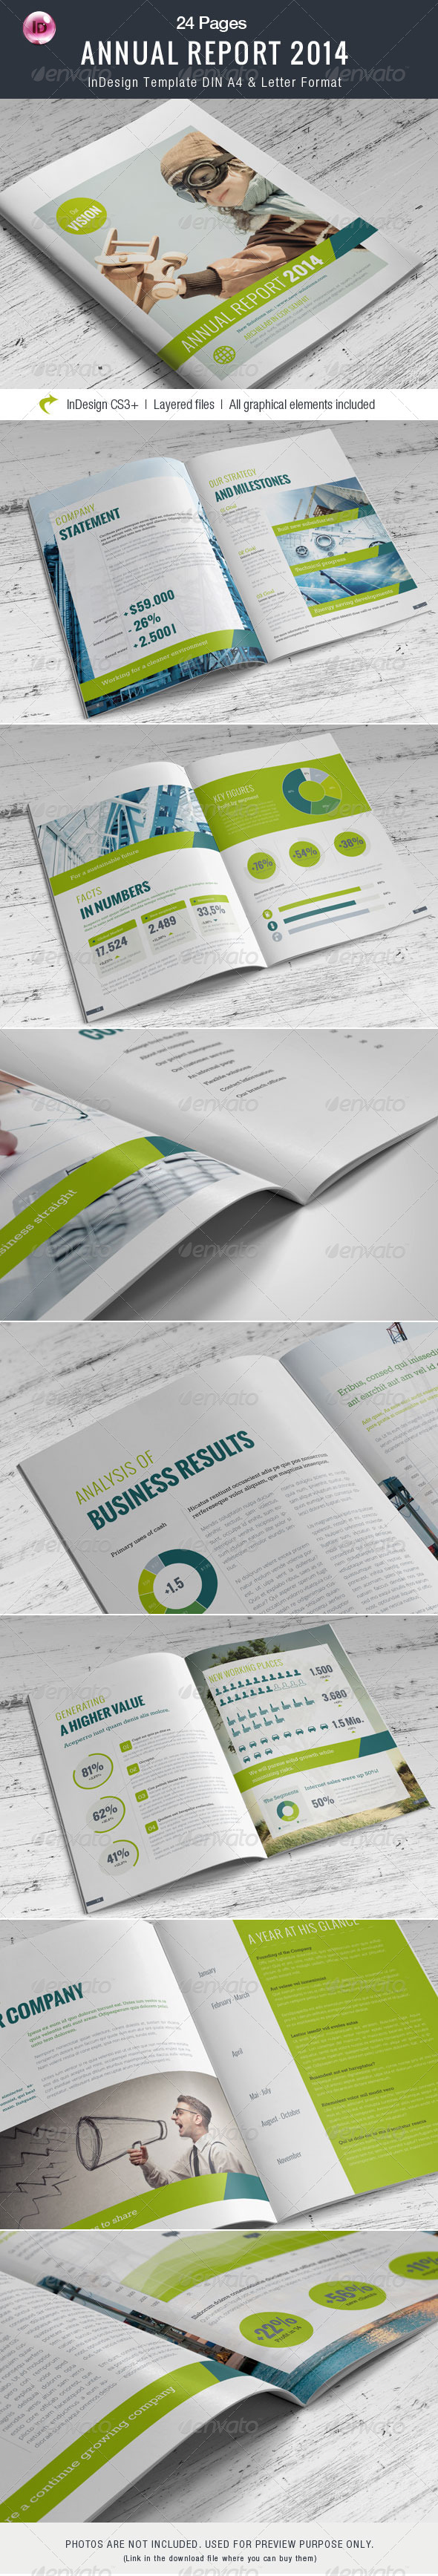 GraphicRiver Annual Report 24 Pages 7694508